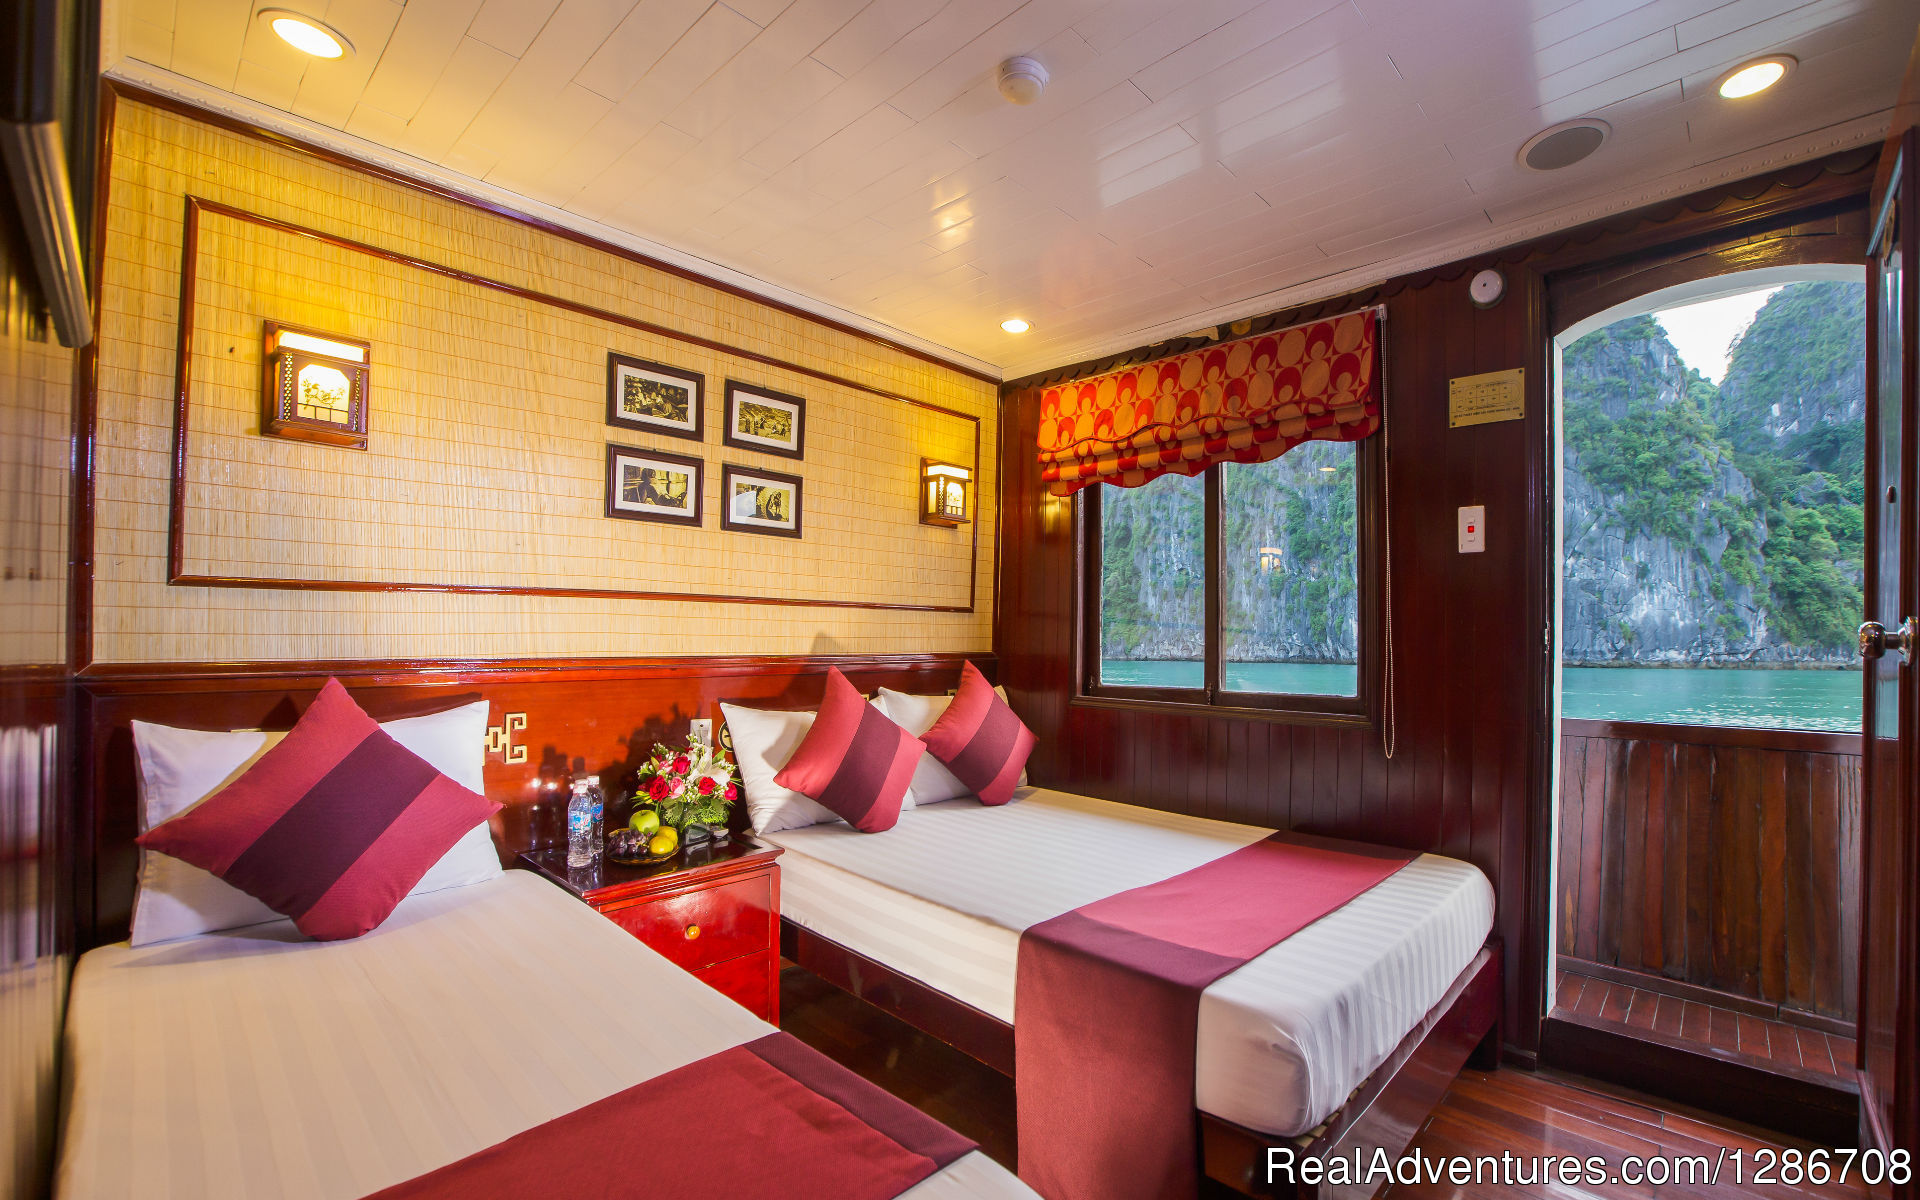 Deluxe triple cabin with seaview